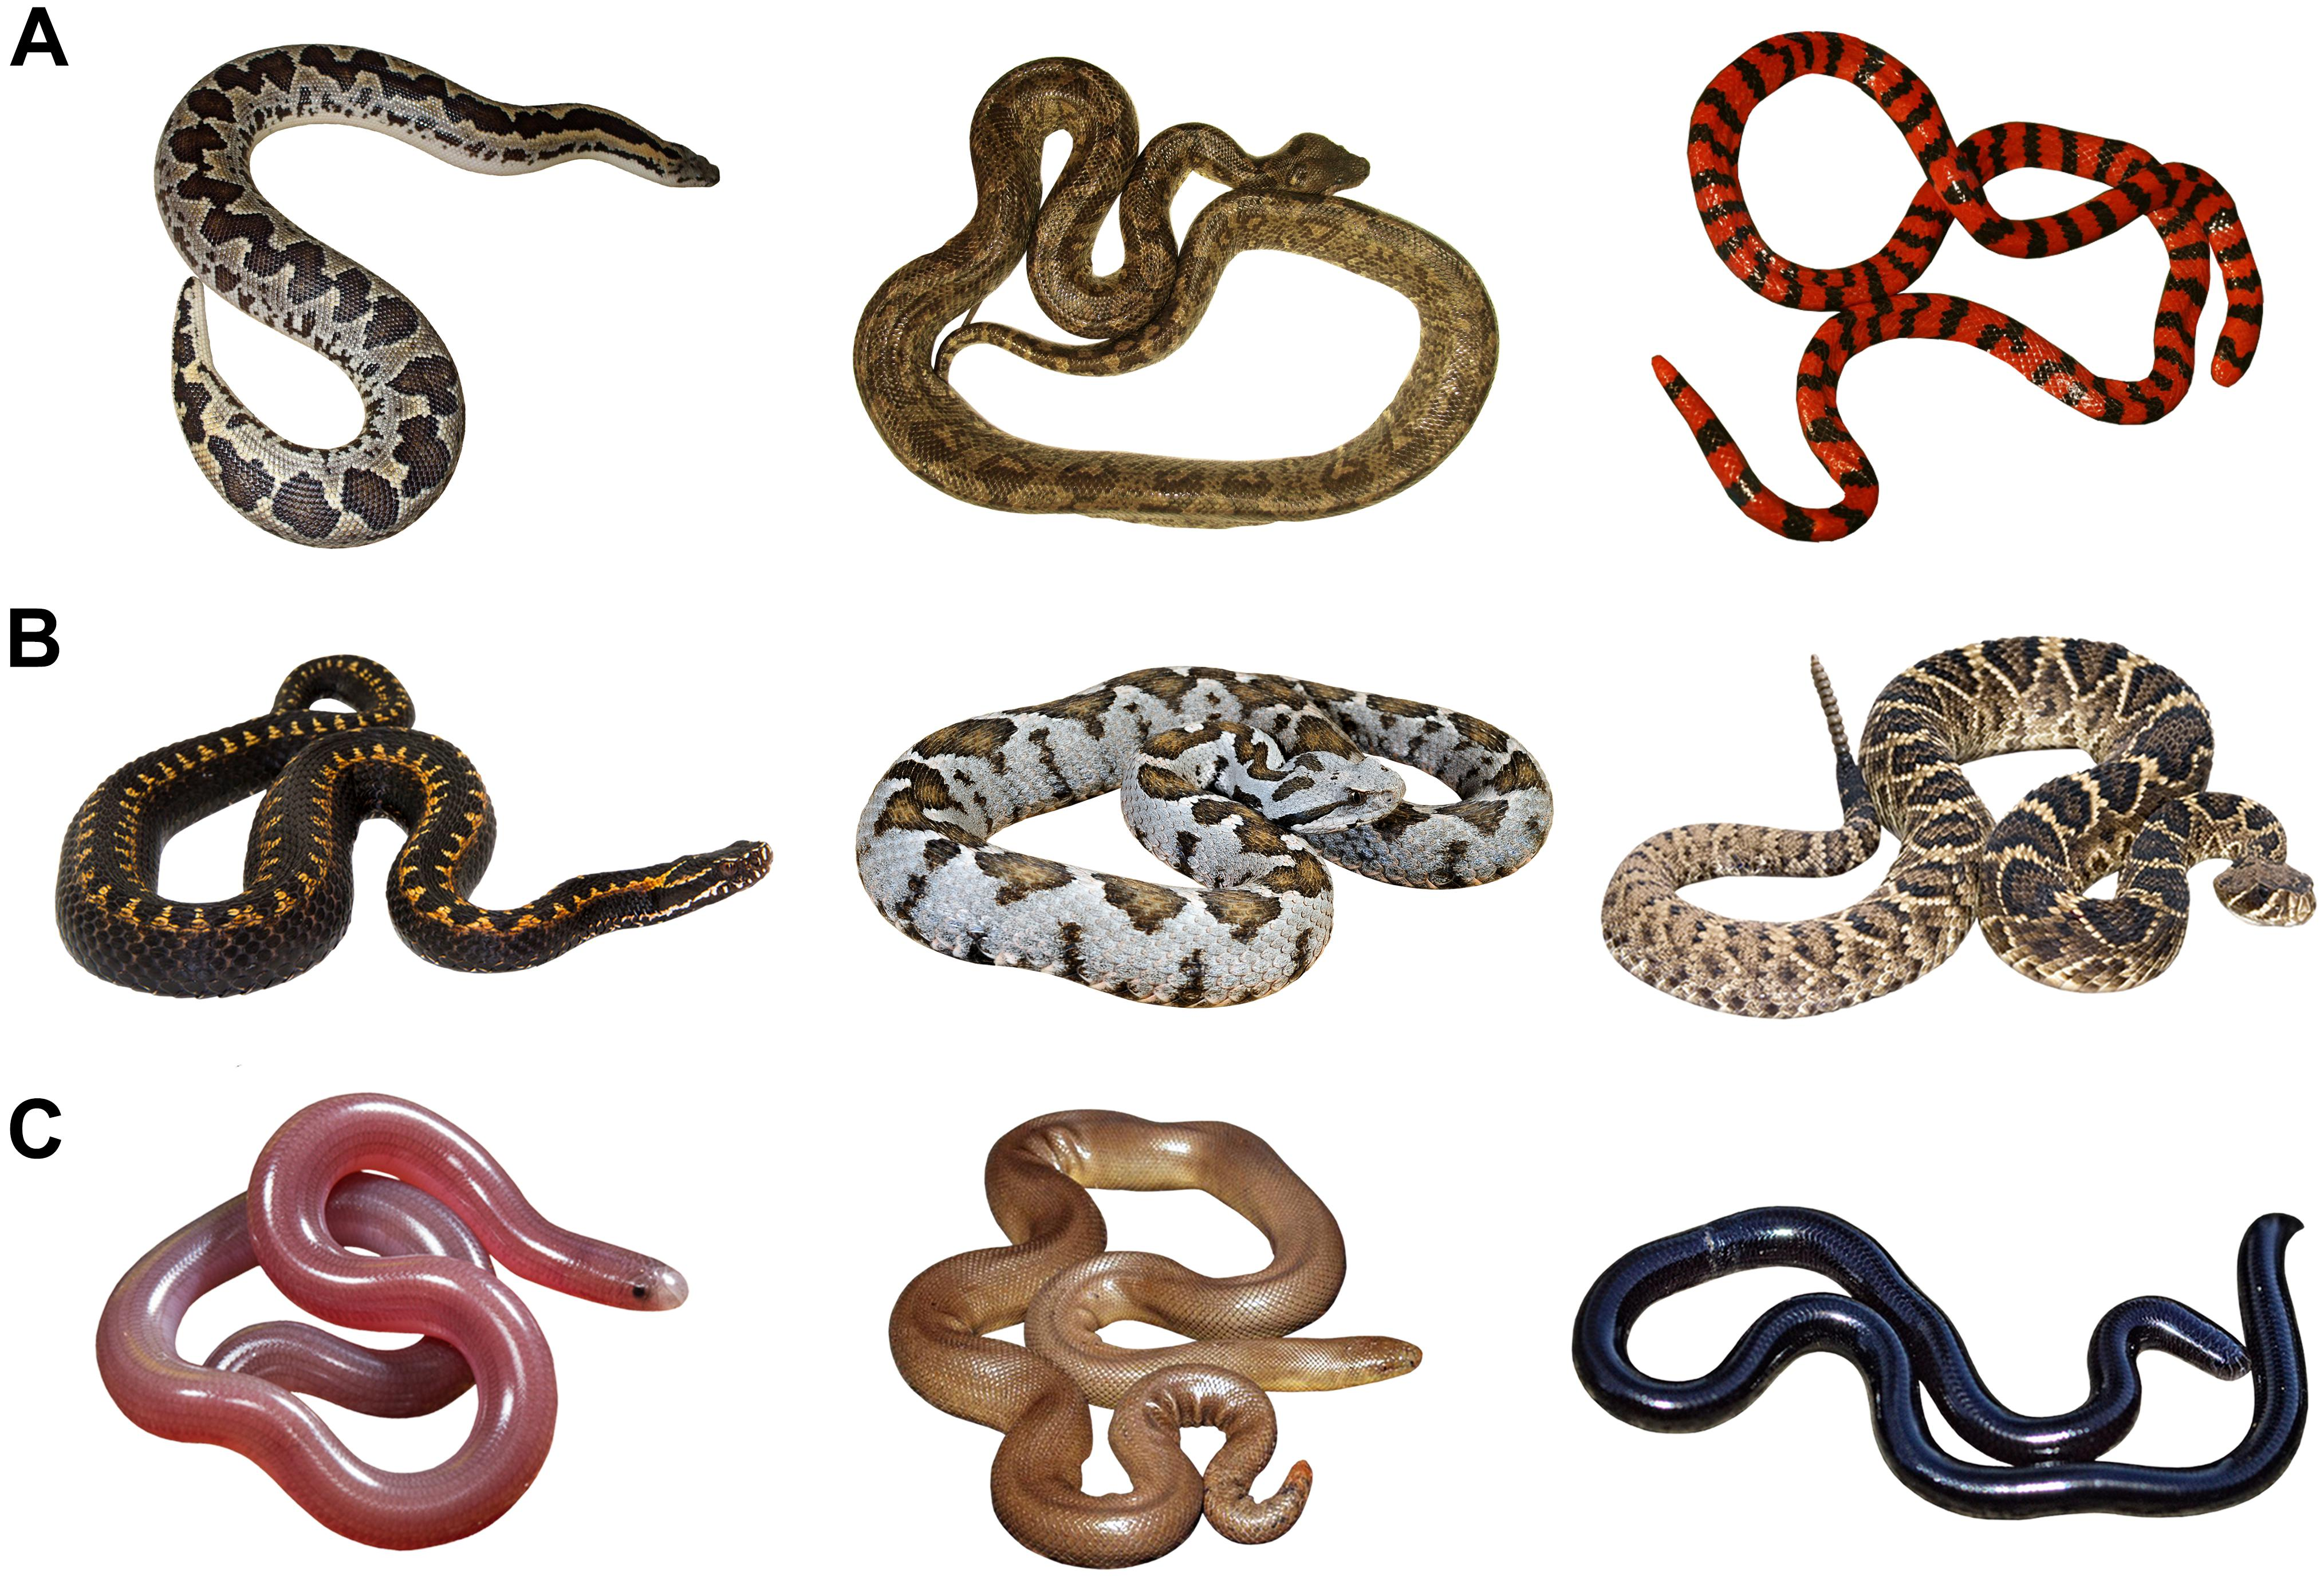 Frontiers Snakes Represent Emotionally Salient Stimuli